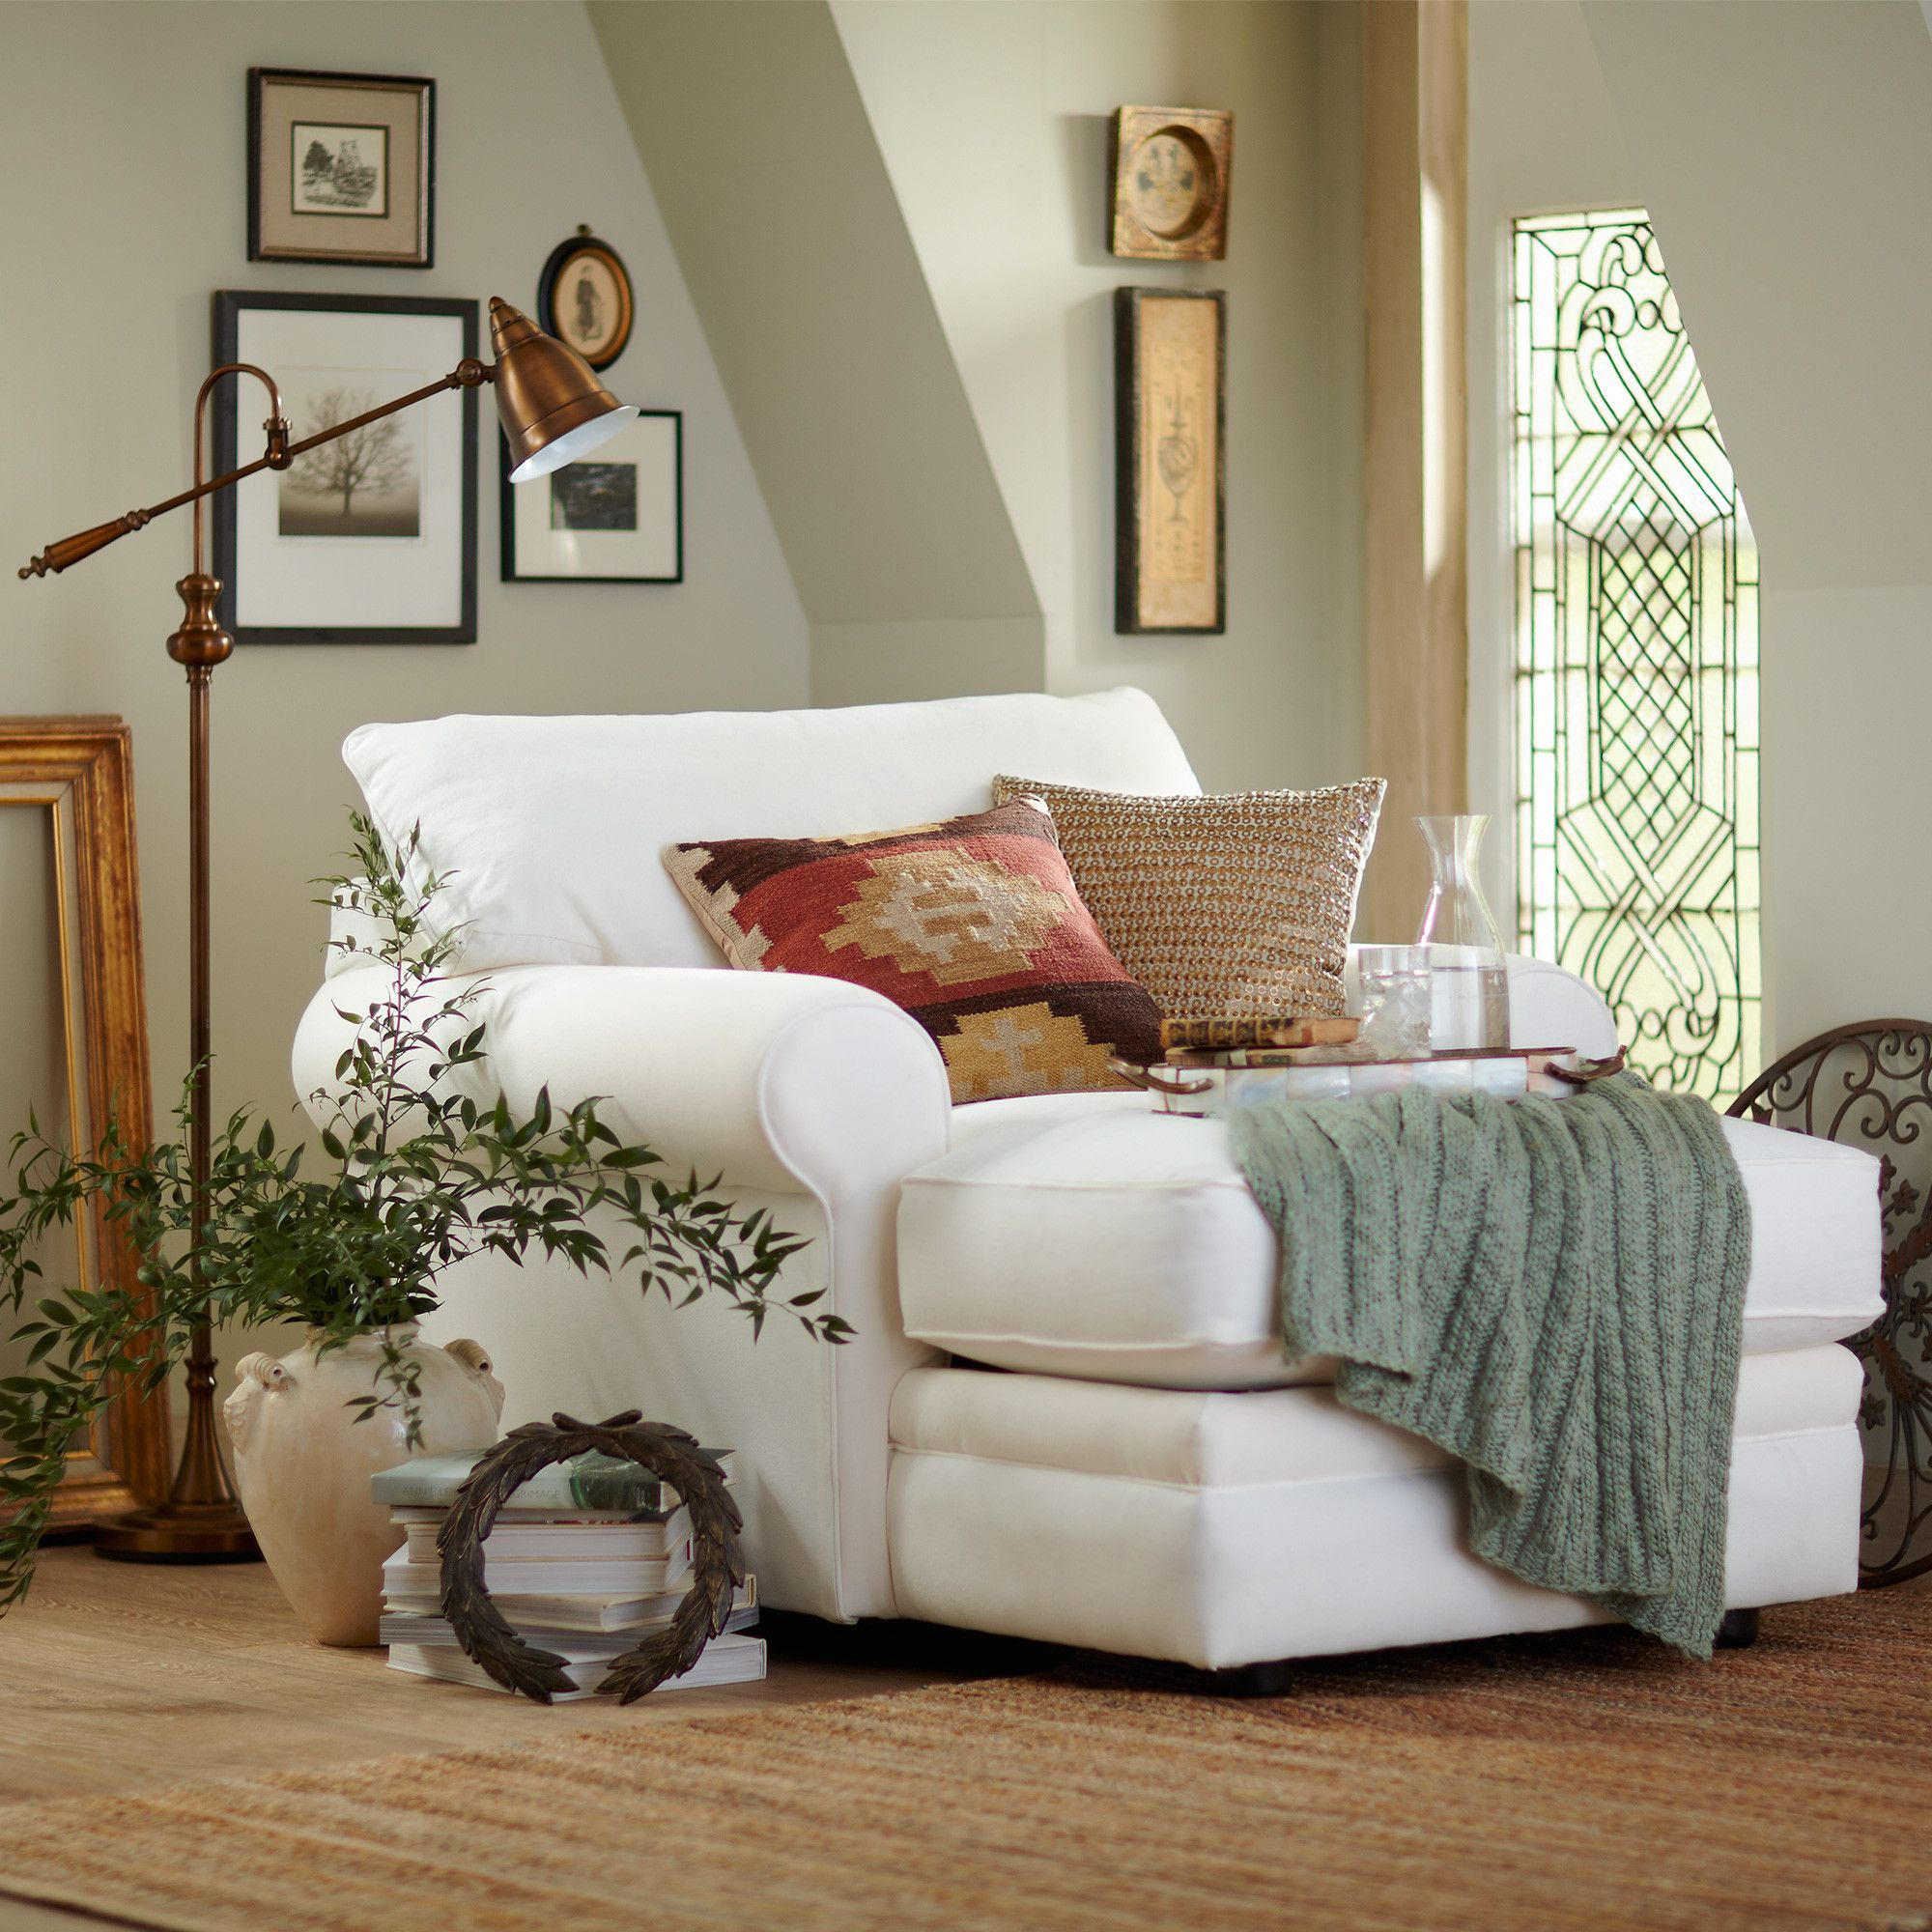 Chaise Lounge Living Room Decor Home Decor Home